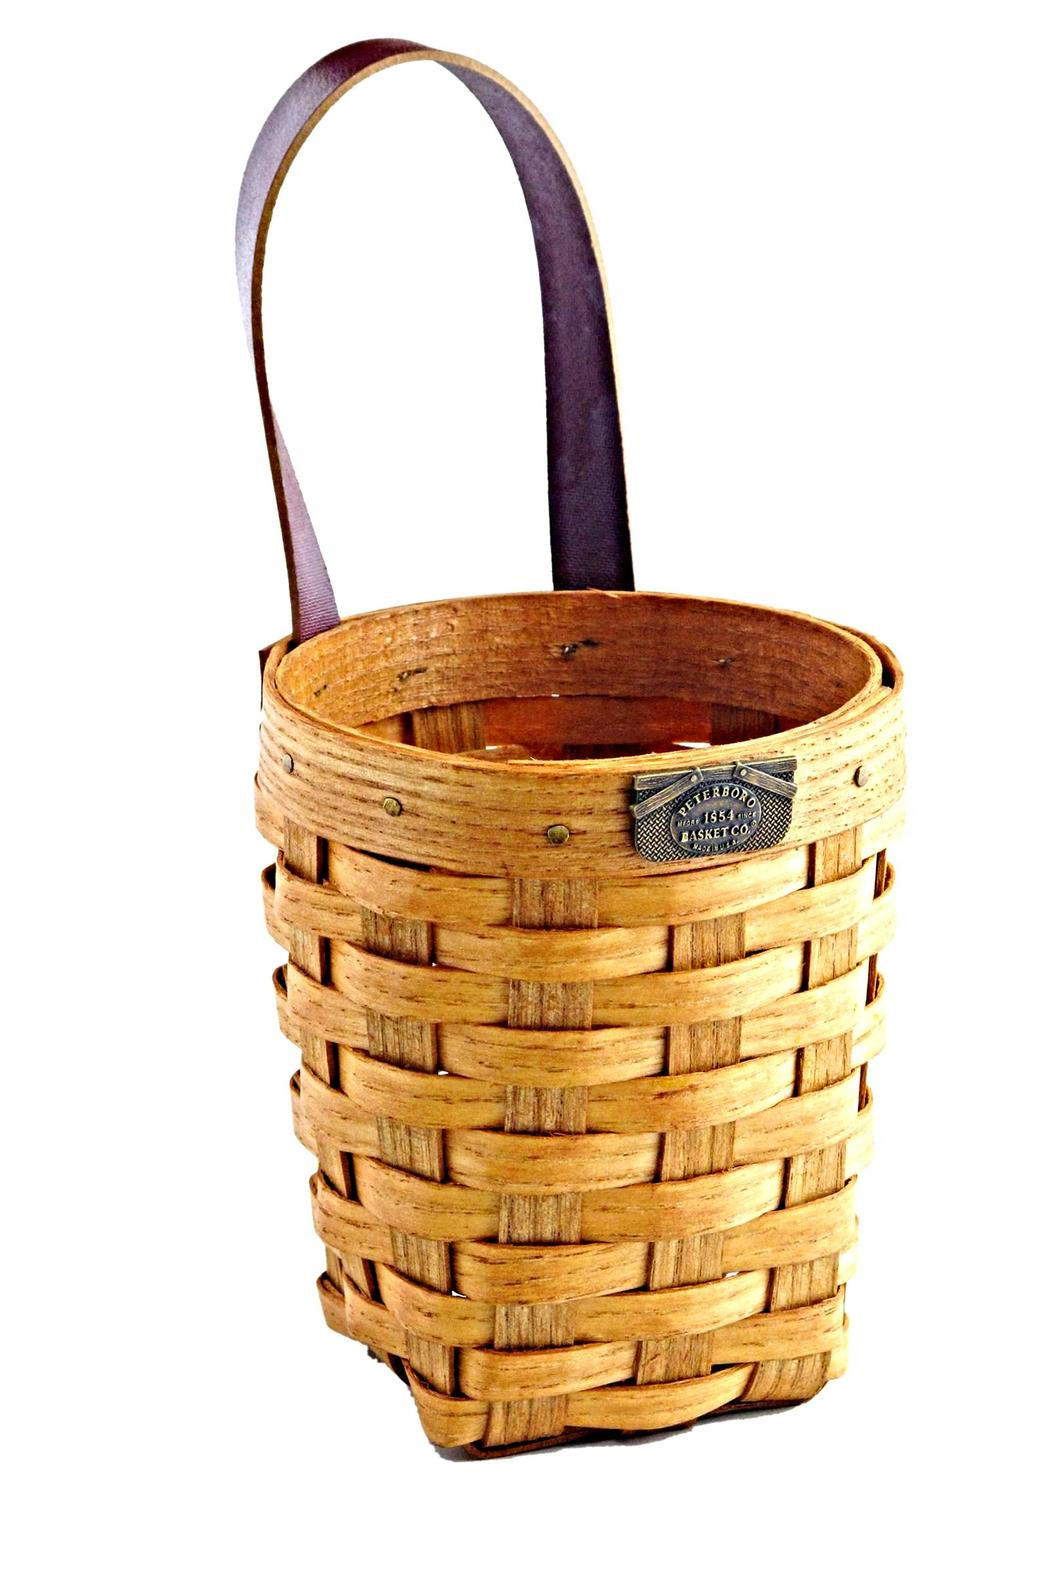 Peterboro Basket Company Doorknob Basket From Palm Beach